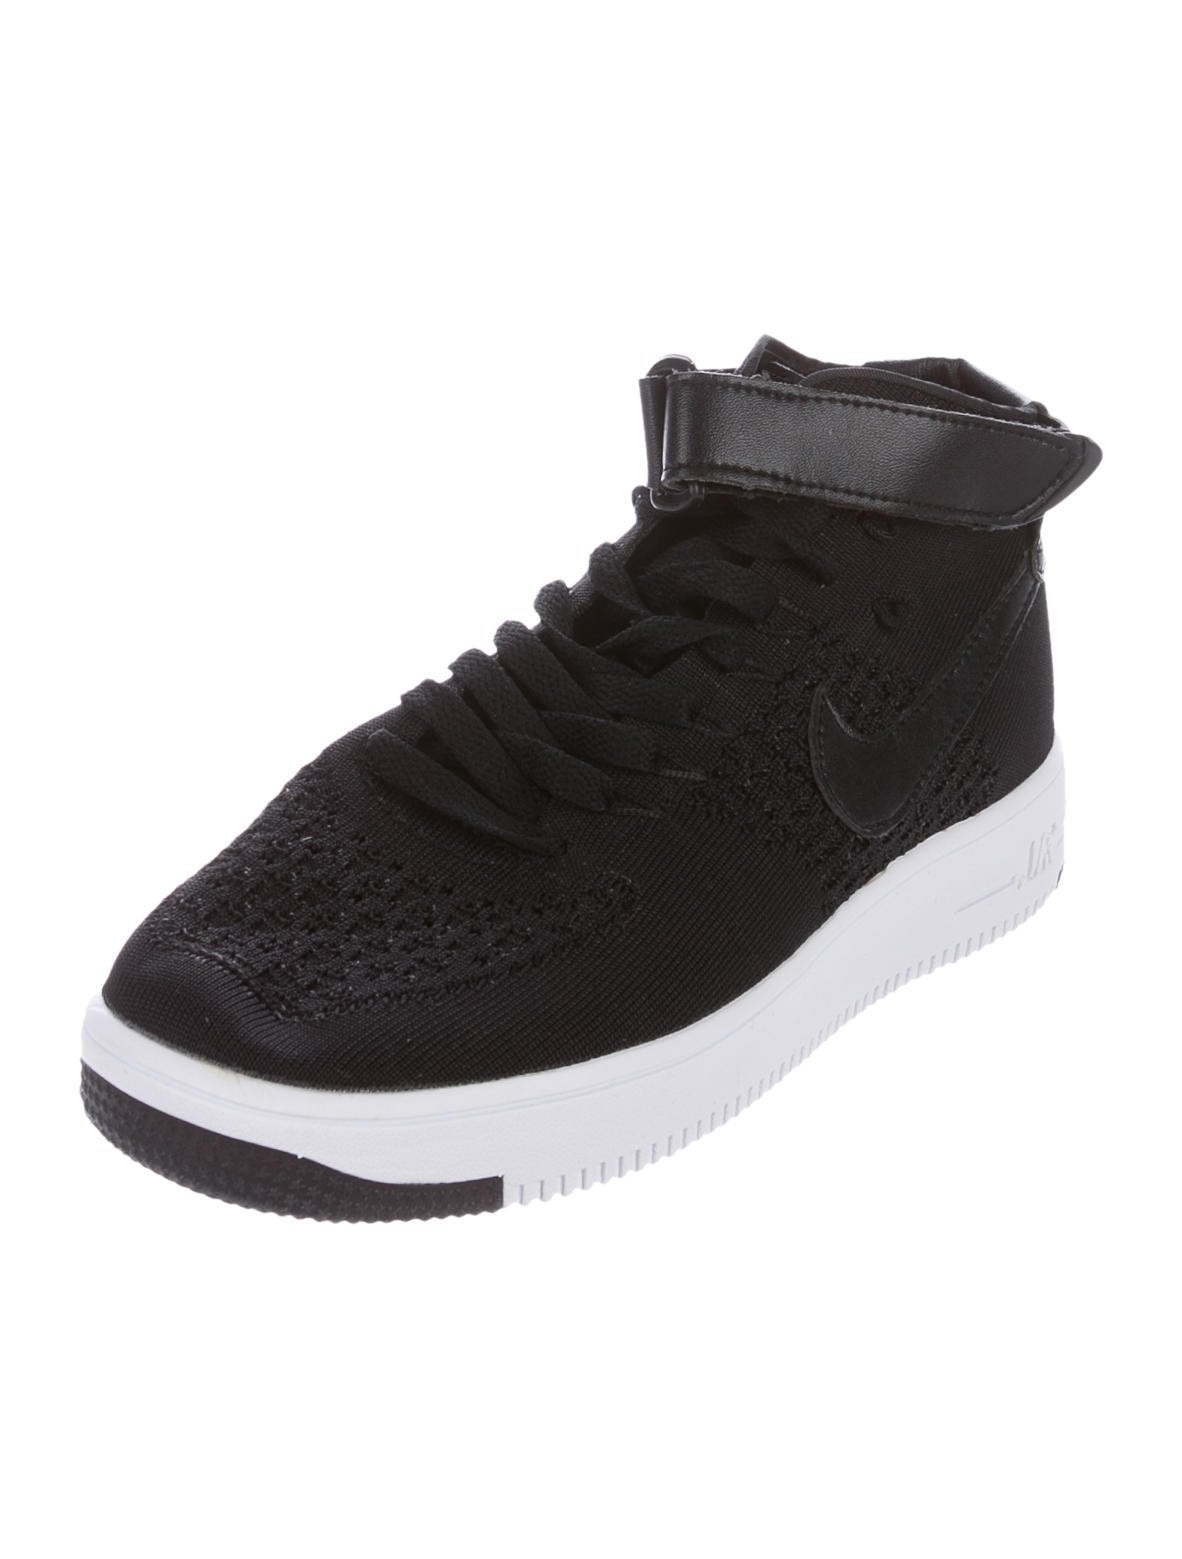 nike air max high top sneakers shoes wu222002 the. Black Bedroom Furniture Sets. Home Design Ideas